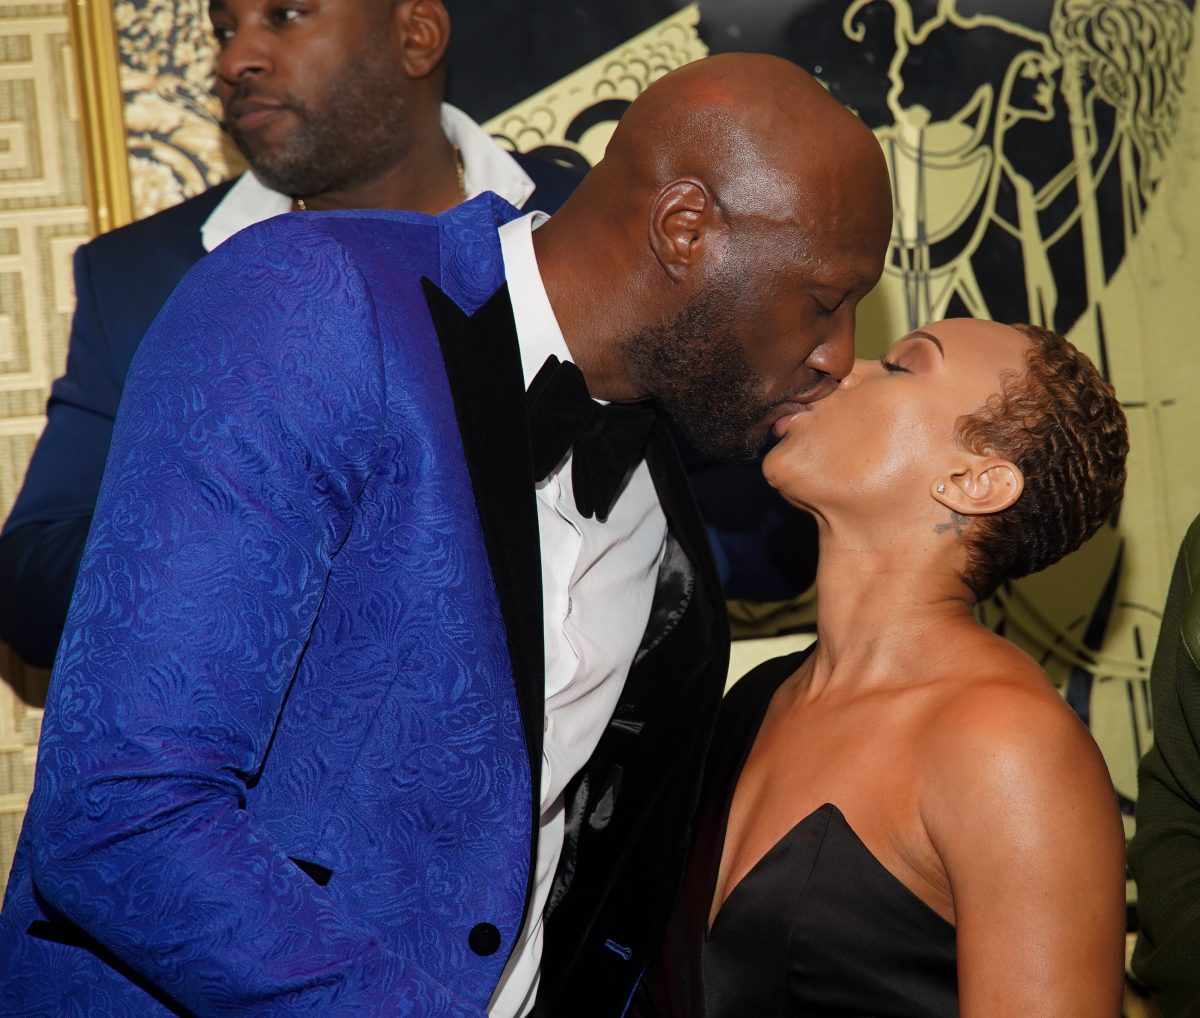 Lamar Odom and Sabrina Parr will attend R&B Ladies Love at Medusa on November 7, 2019 in Atlanta, Georgia